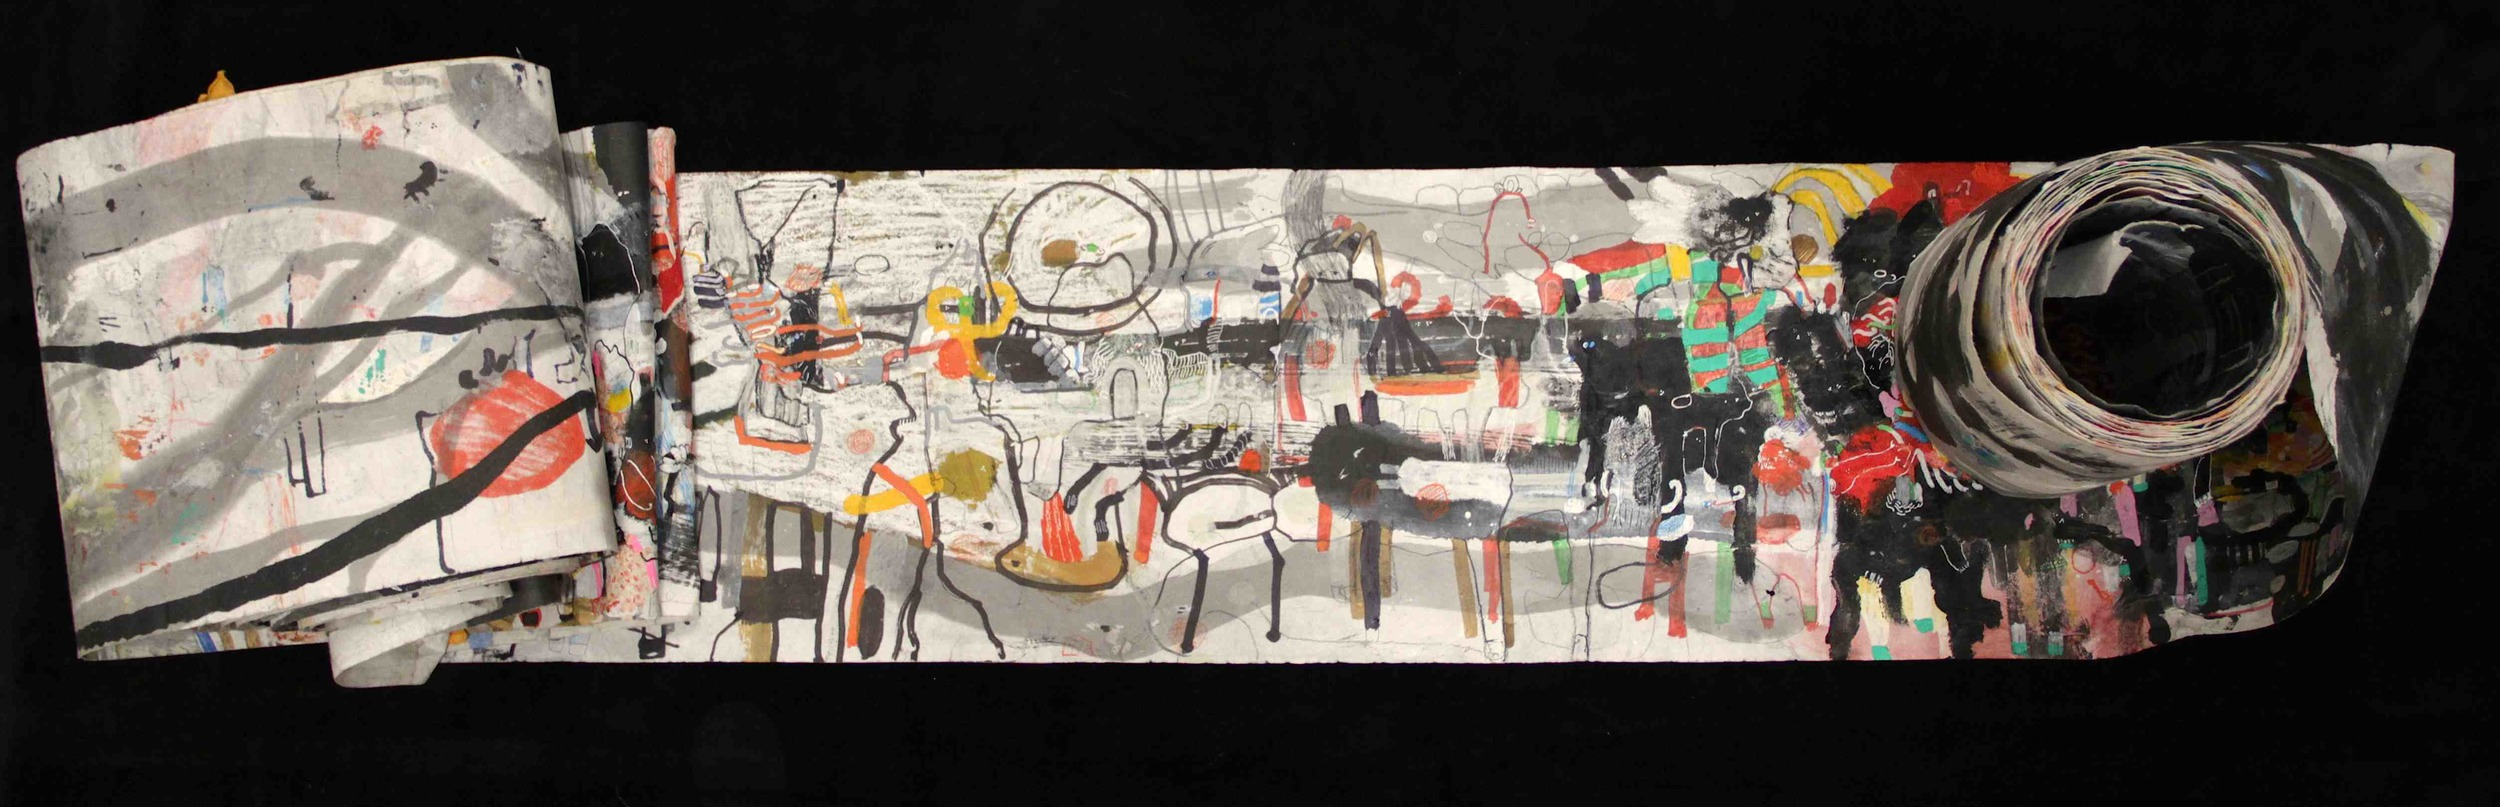 """""""The Wind atop The Wood -Winds of Mount Meru Tangling Threads of Rainbow atop the Wood -Scroll 8""""   11 inches x 60 feet  ink, watercolor, gouache, dye, lost & found paper, crayon and graphite on mulberry paper scroll  2015"""